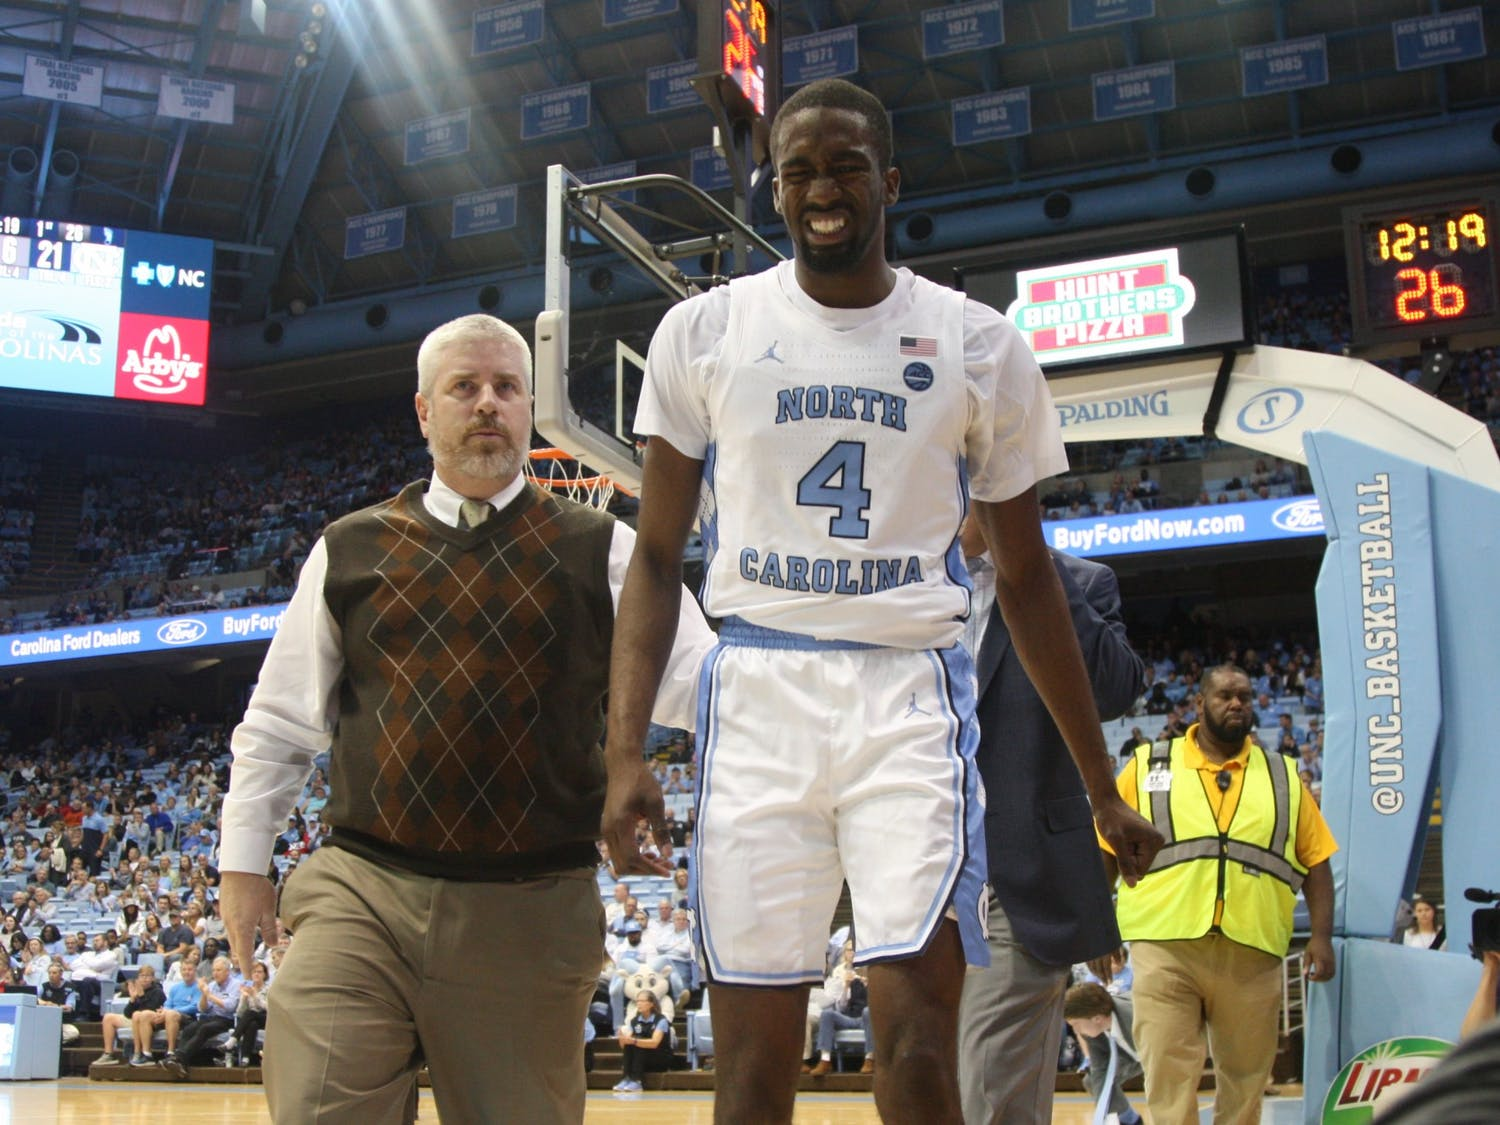 Senior guard Brandon Robinson (4) walks off the court after an injury during the exhibition game on Friday, Nov. 1, 2019. UNC beat WSSU 96-61.